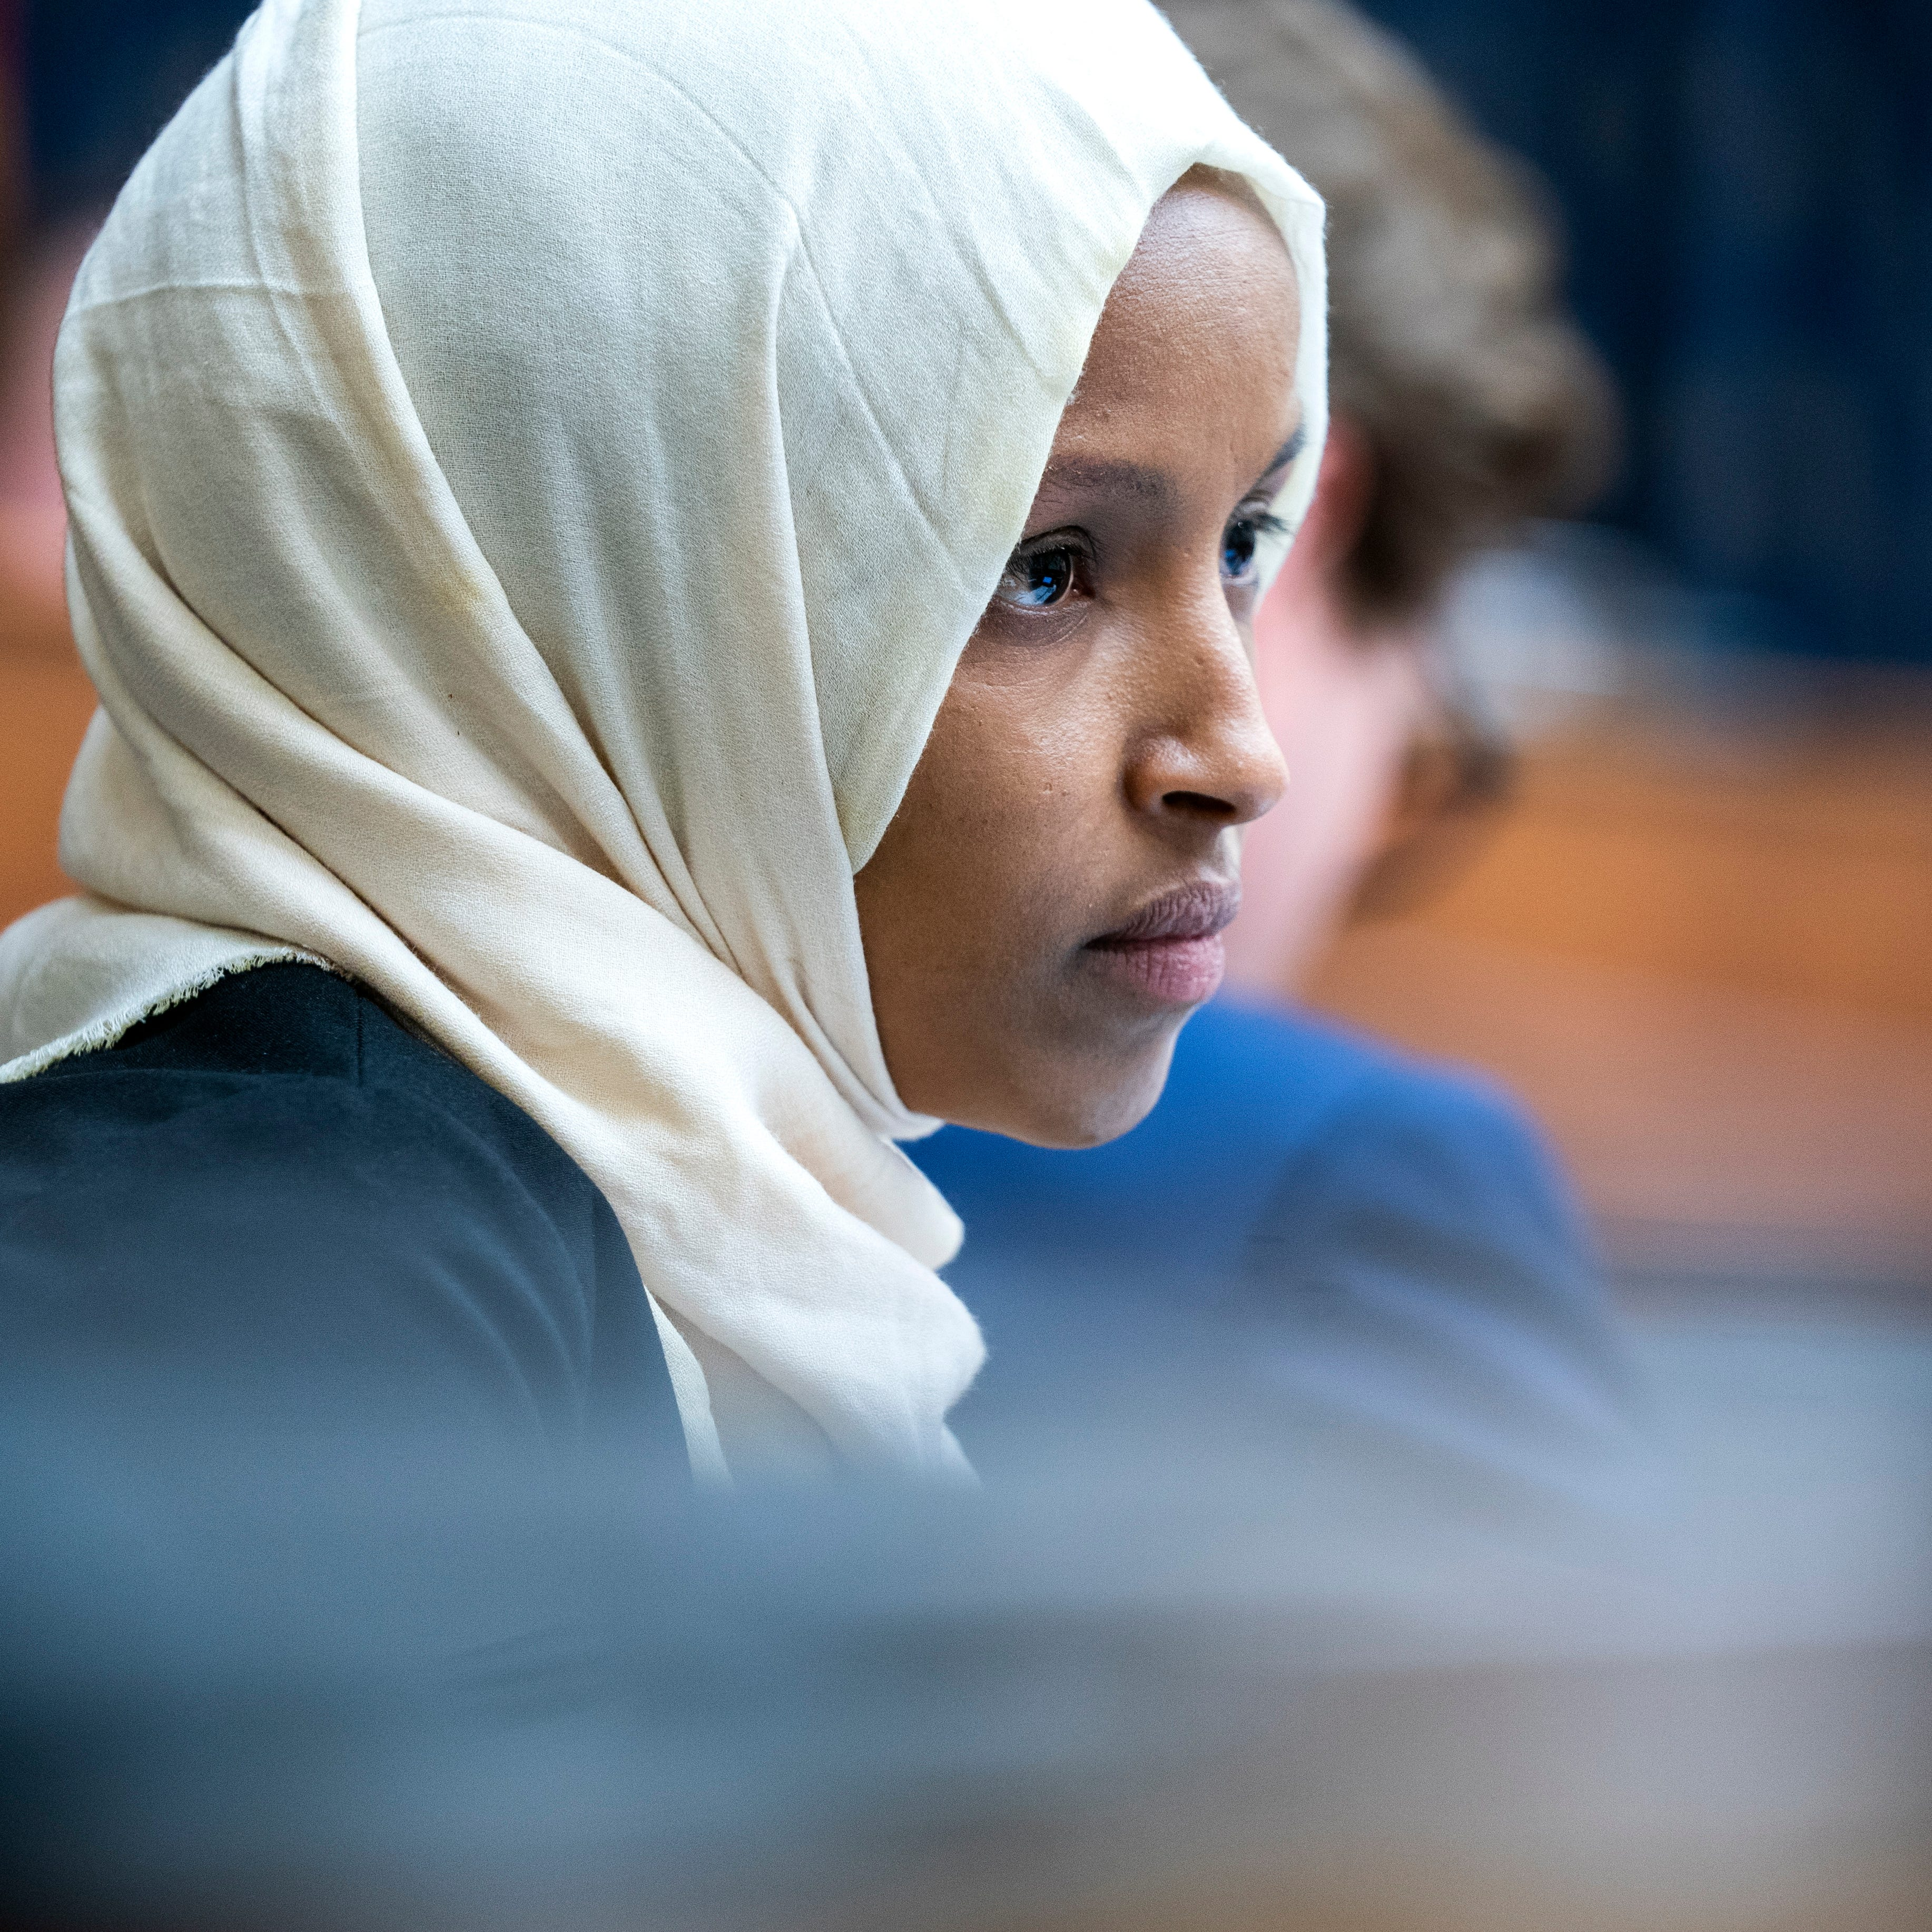 Rep. Ilhan Omar, D-Minn., attends a Foreign Affairs Committee hearing in the Rayburn House Office Building in Washington, March 7, 2019.